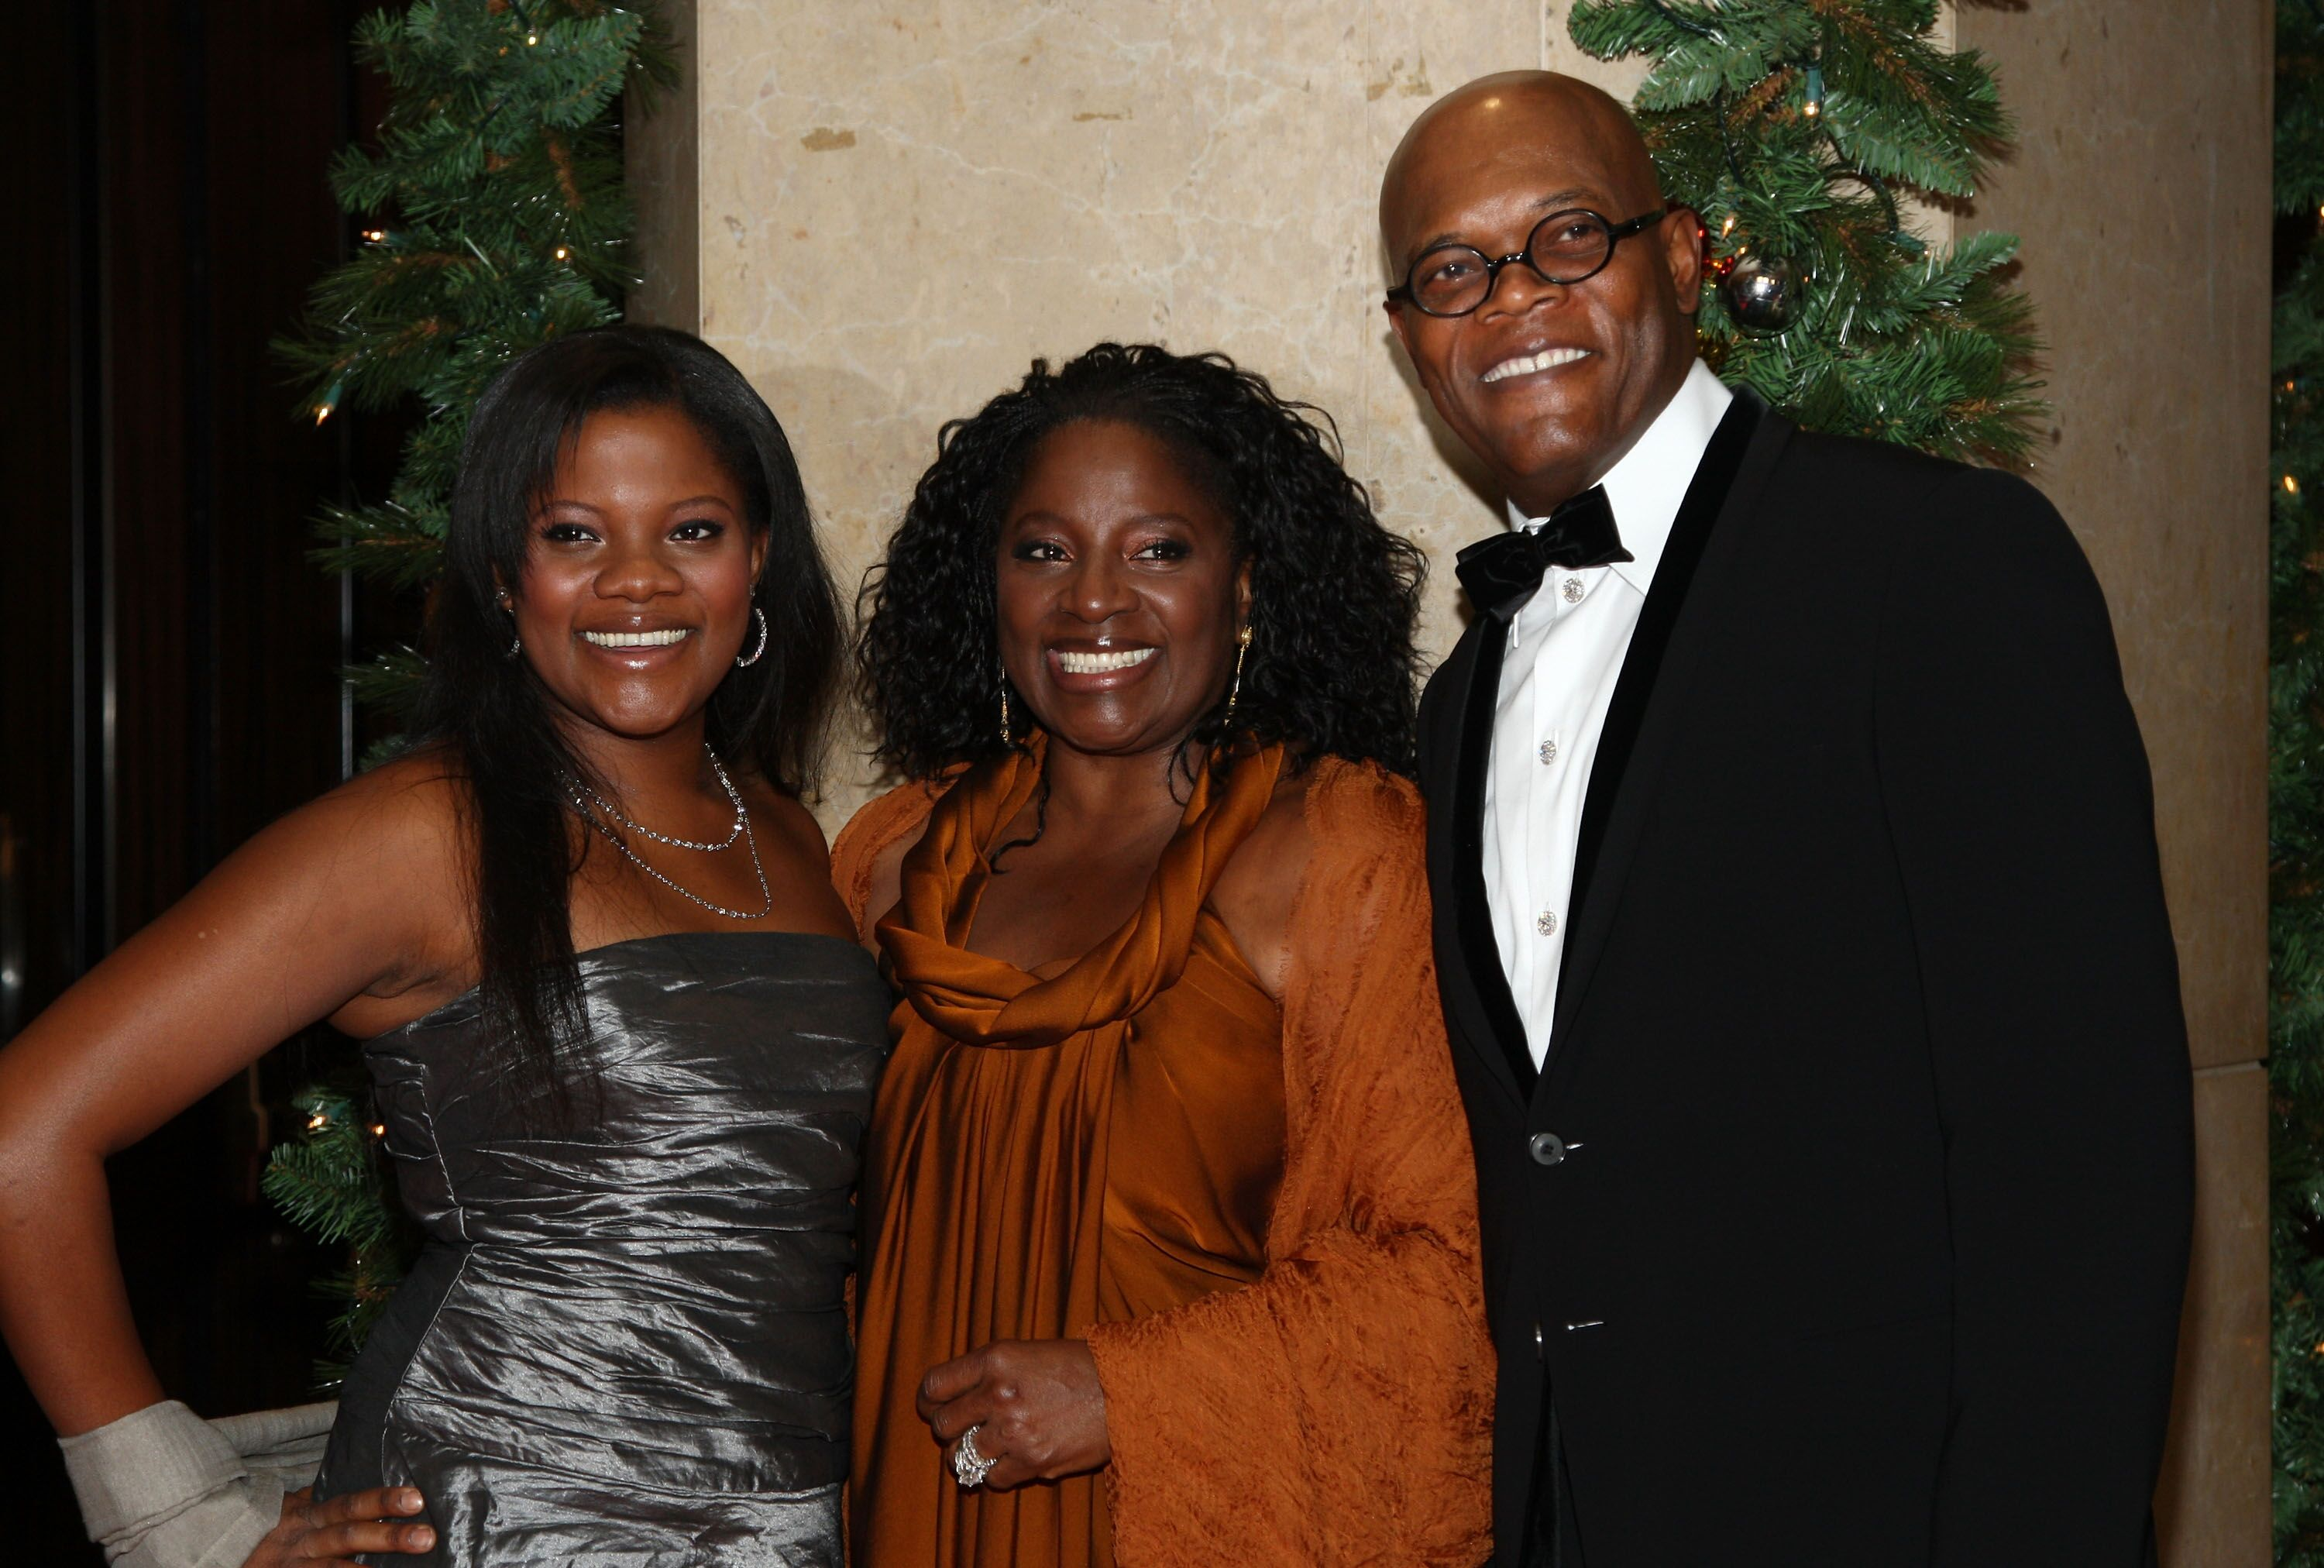 Samuel L. Jackson, wife LaTanya Richardson and daughter Zoe Jackson at the 23rd annual American Cinematheque show | Source: Getty Images